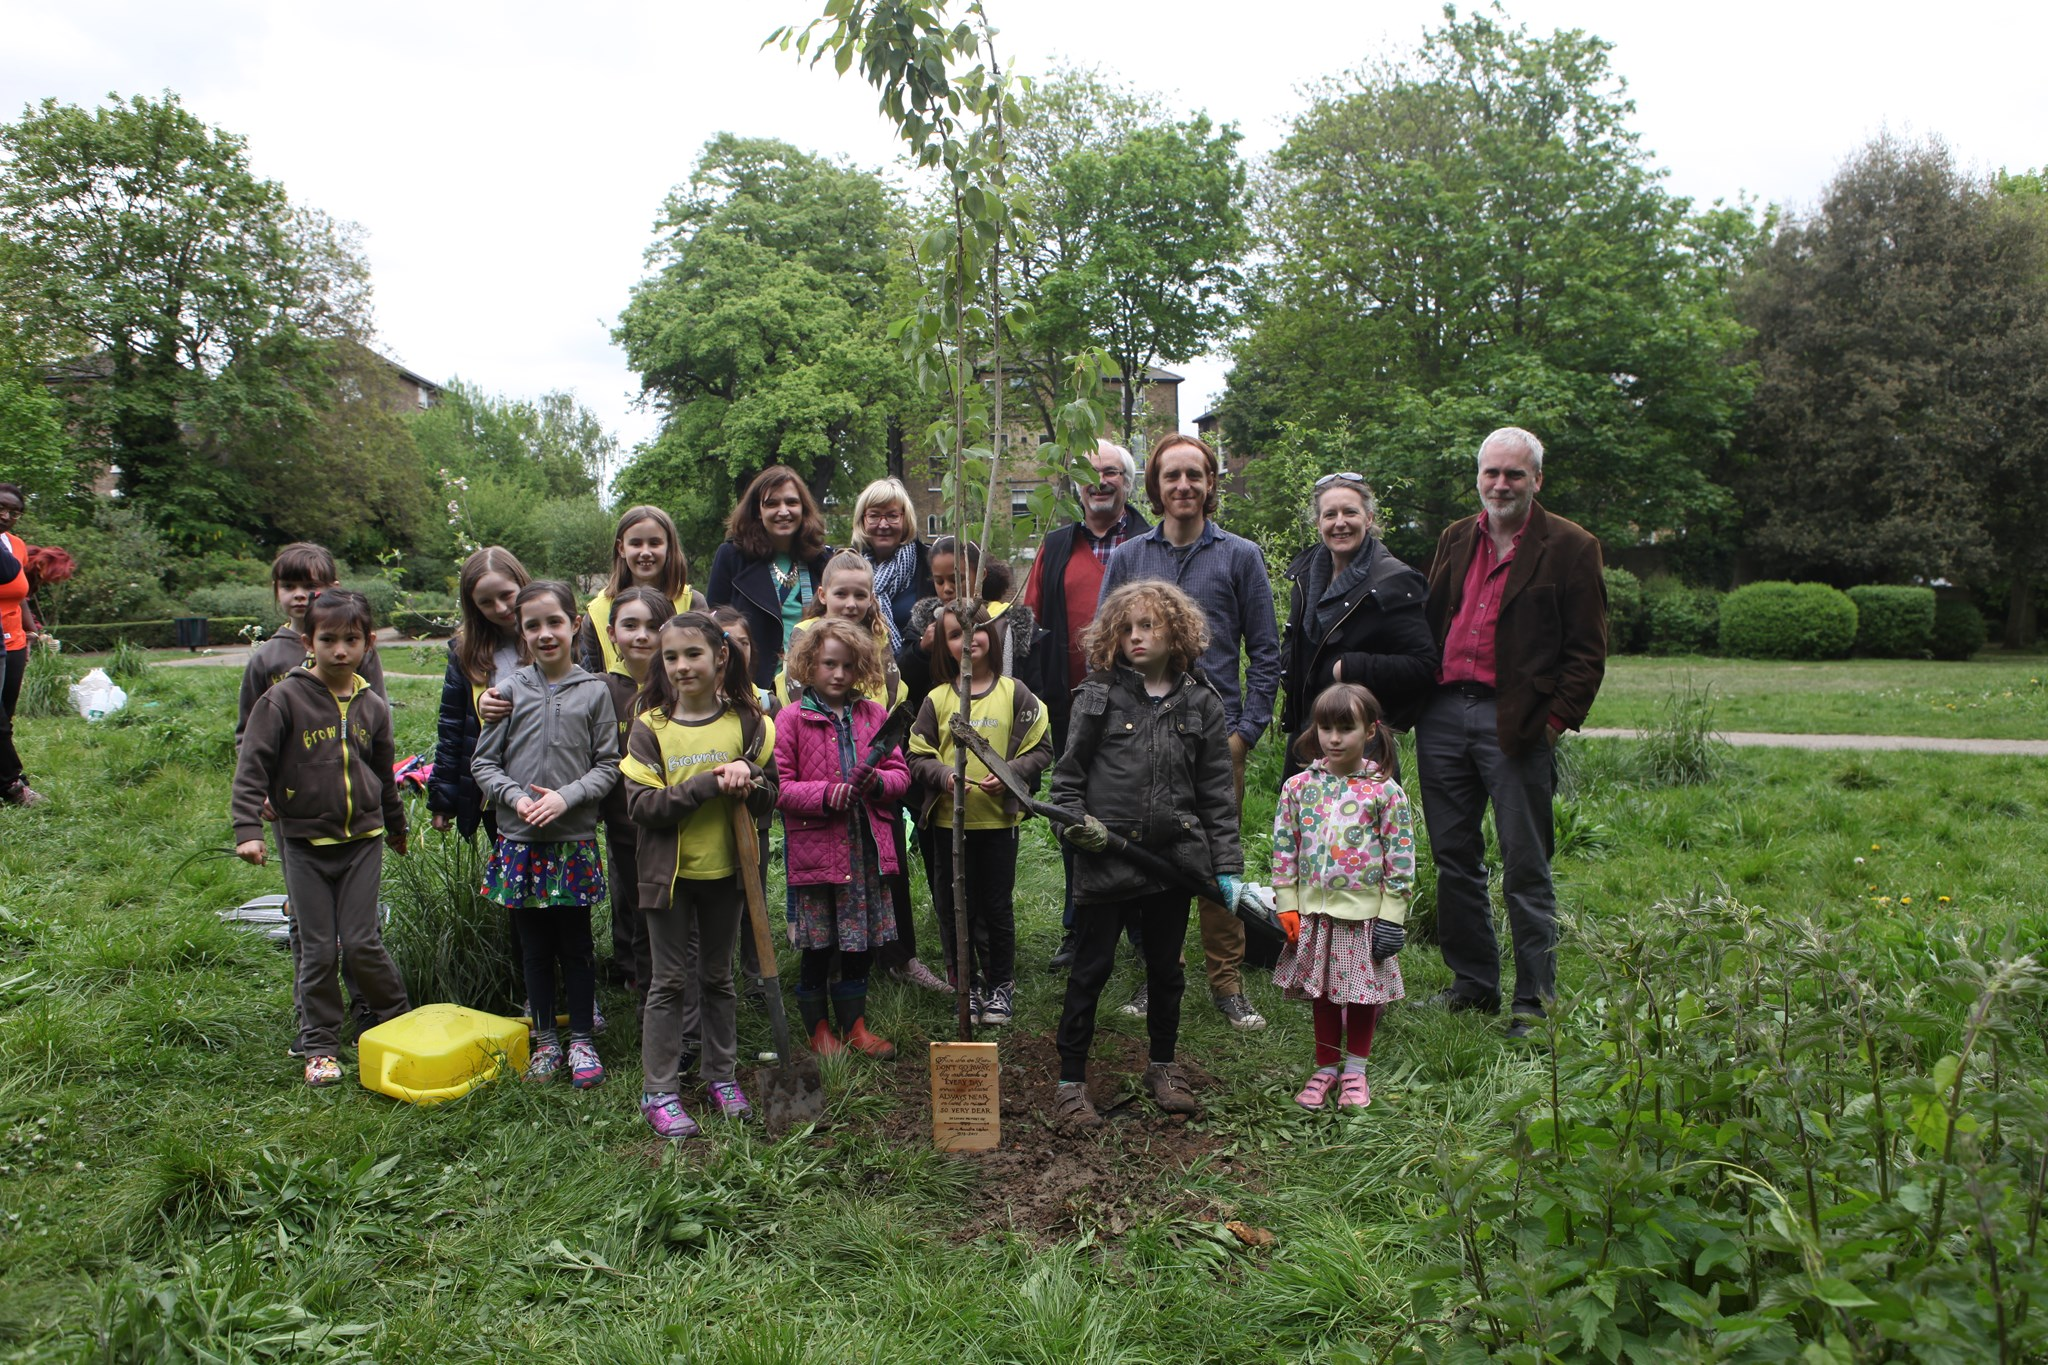 Cherry Blossom planting day in Manor Park for the memory of Nicola...2017/April